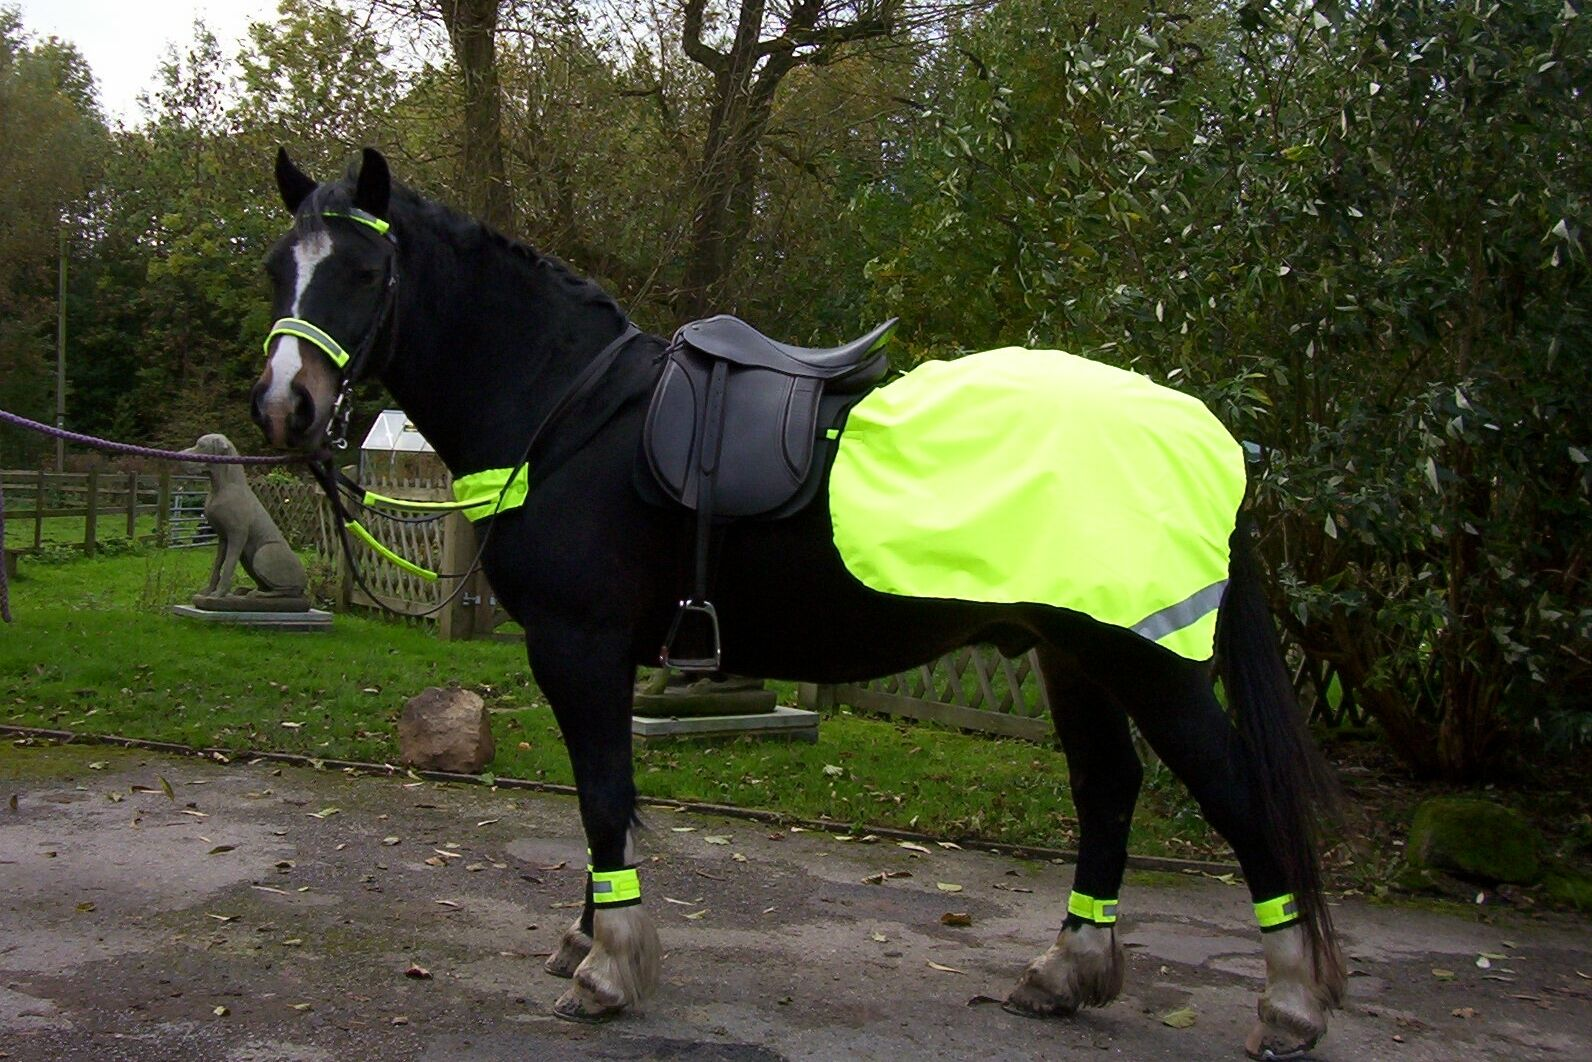 Locata Hi Vis Fluorescent Yellow Attaches To Horse Saddle Or Rug Identity Tag For Sale Ebay